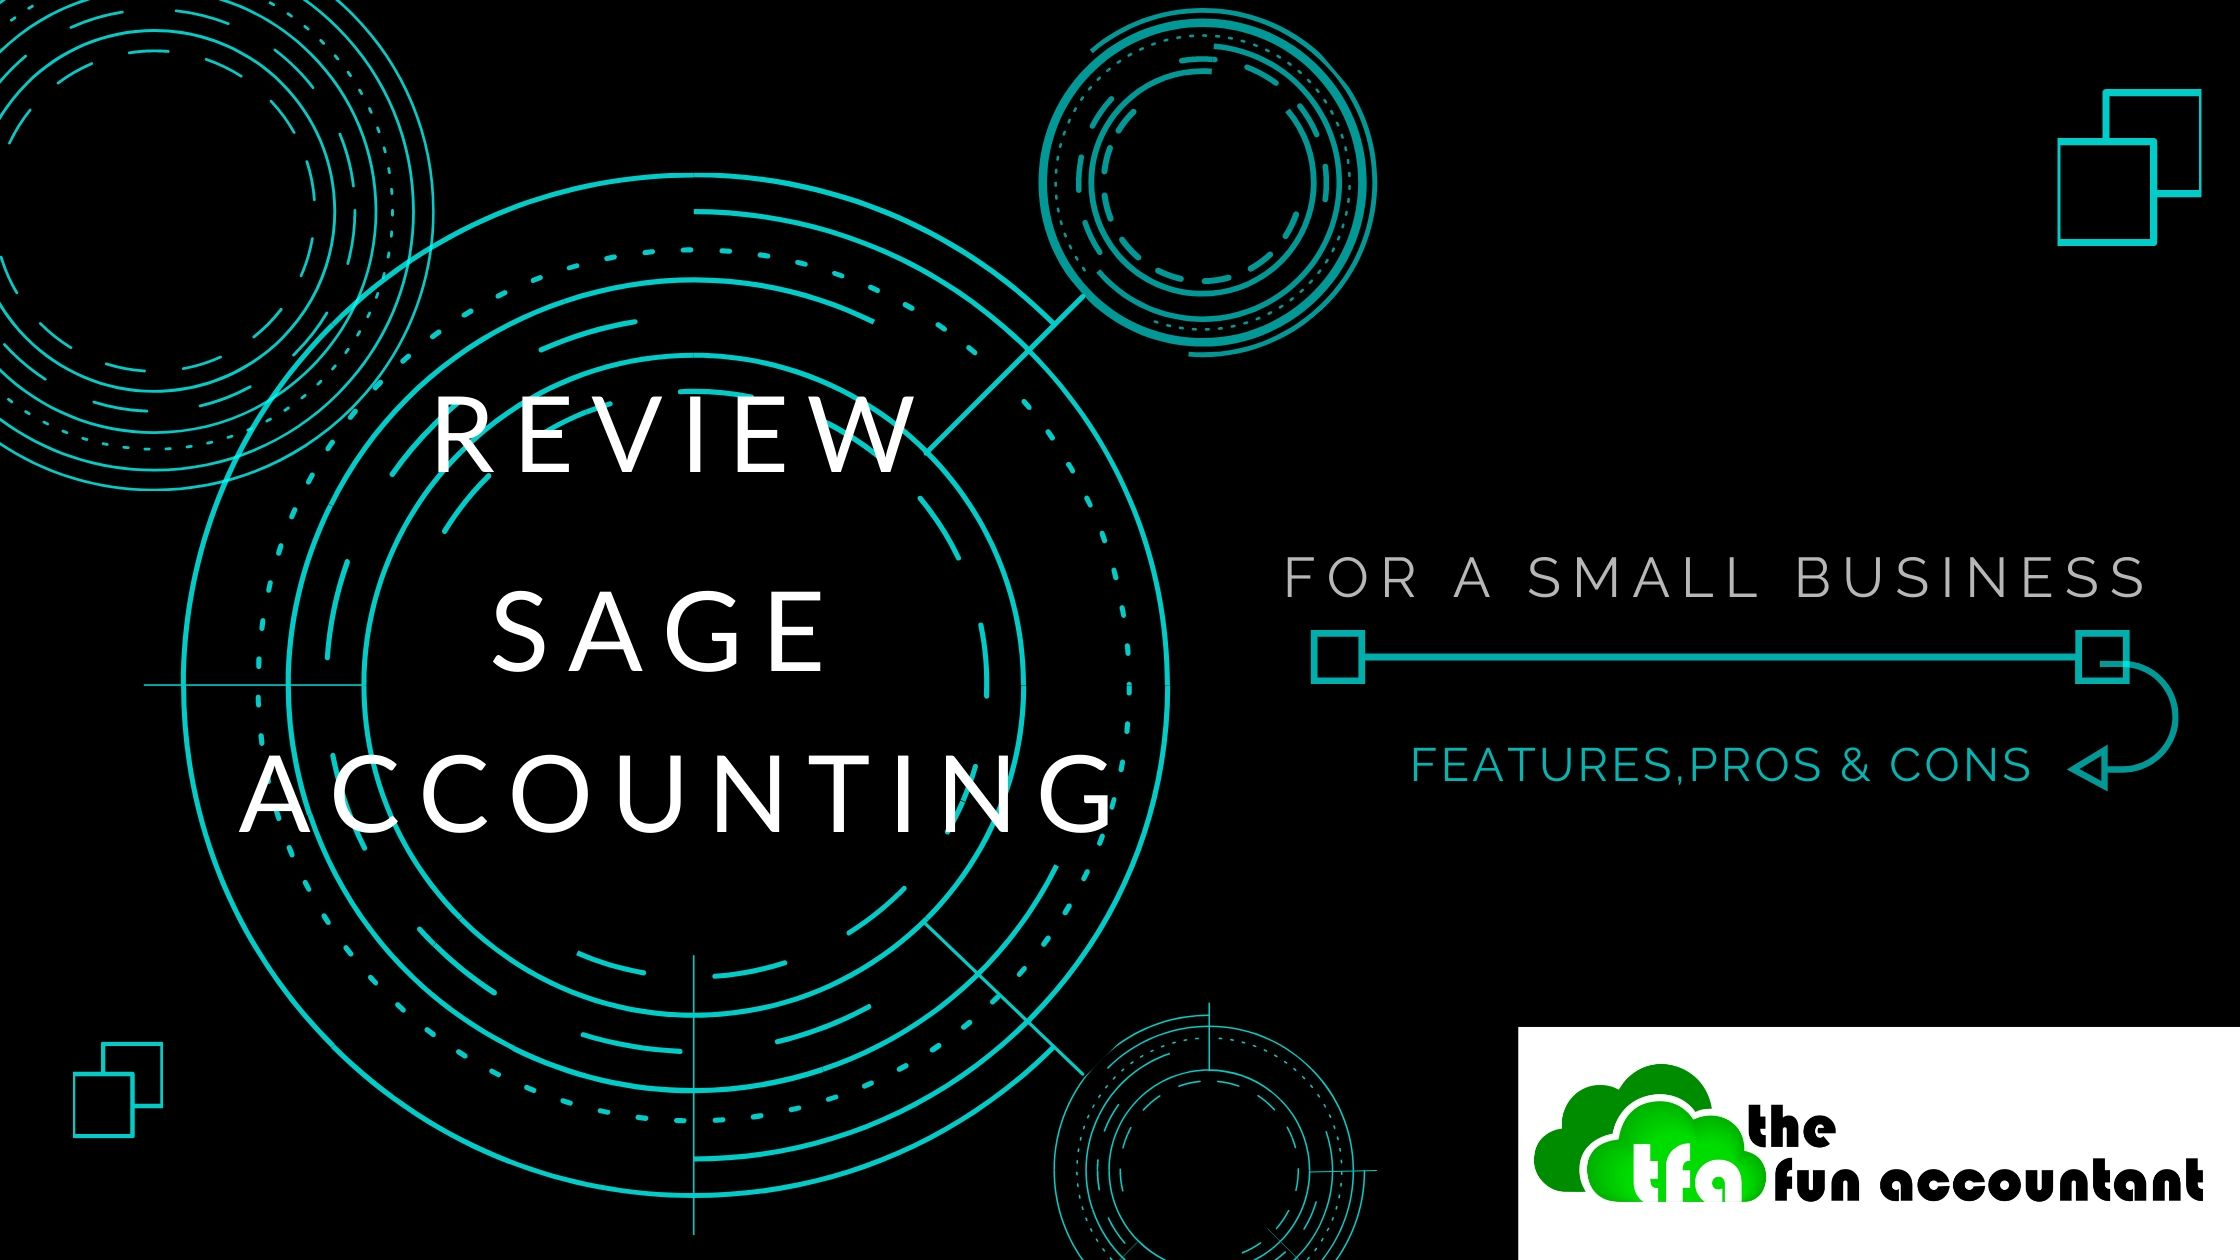 Review of sage accounting